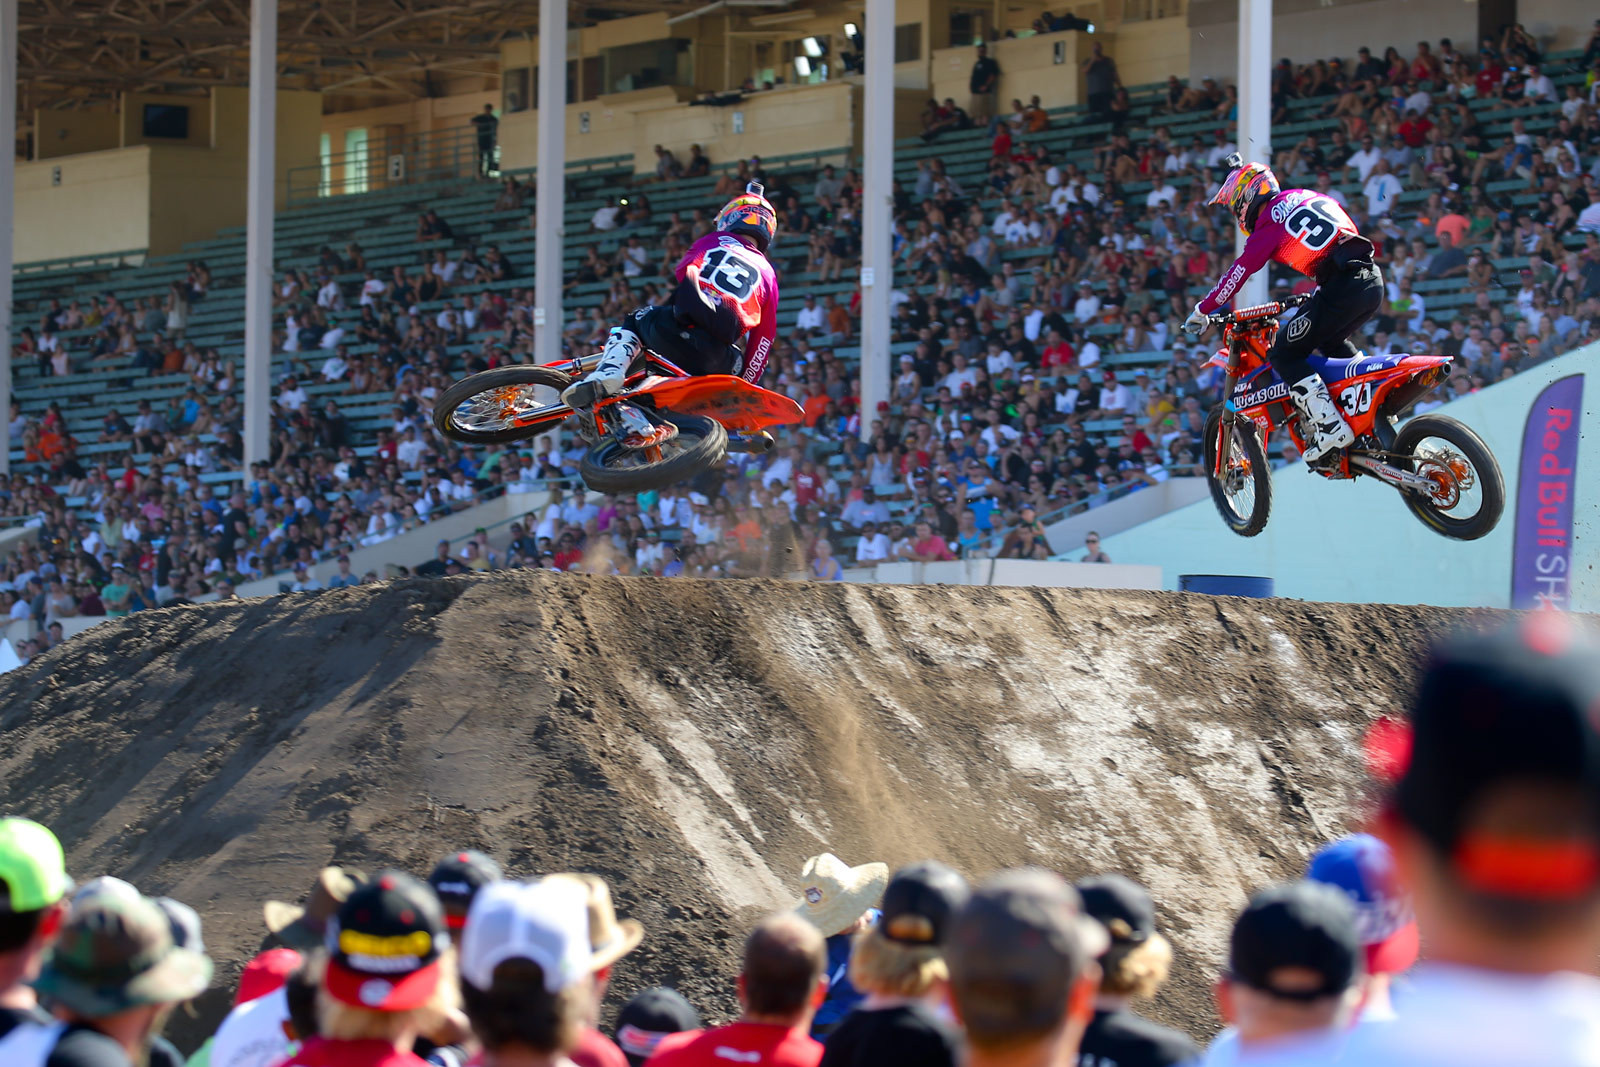 Jessy Nelson and Shane McElrath - Photo Blast: Red Bull Straight Rhythm - Motocross Pictures - Vital MX